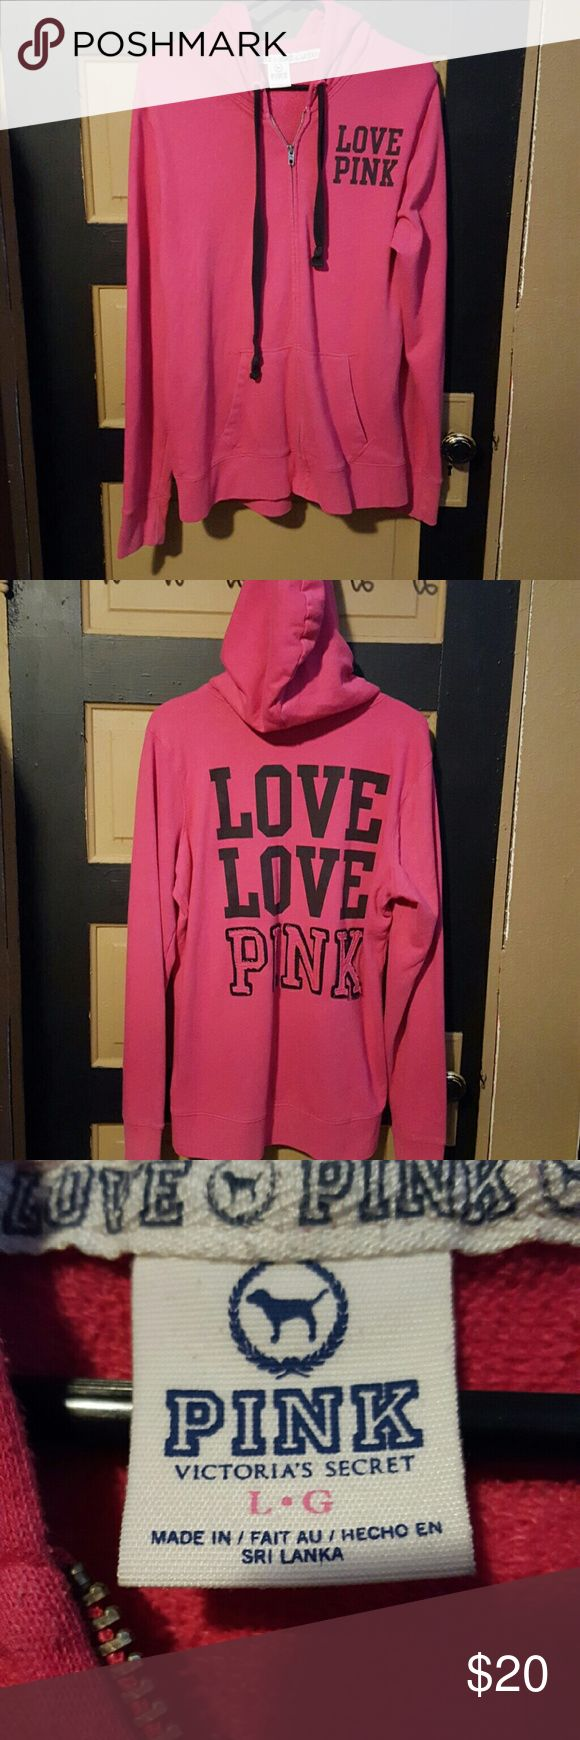 Pink (Victoria's Secret) Zip up hoodie Large Pink zip up hoodie, the eyelets started to fall out so I had to sew them in, other than that no damage. PINK Victoria's Secret Tops Sweatshirts & Hoodies